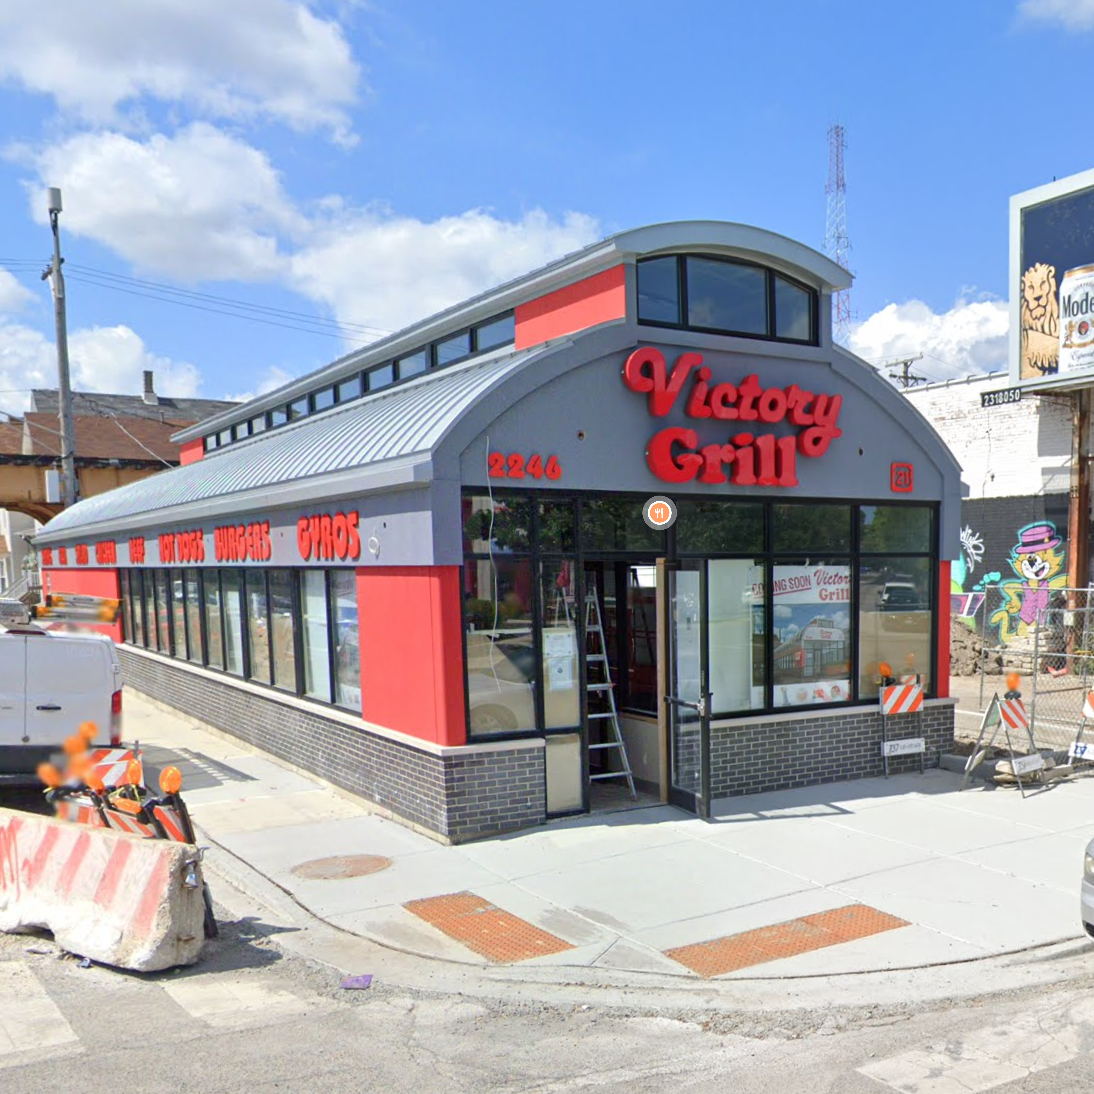 Victory Grill, Chicago, IL